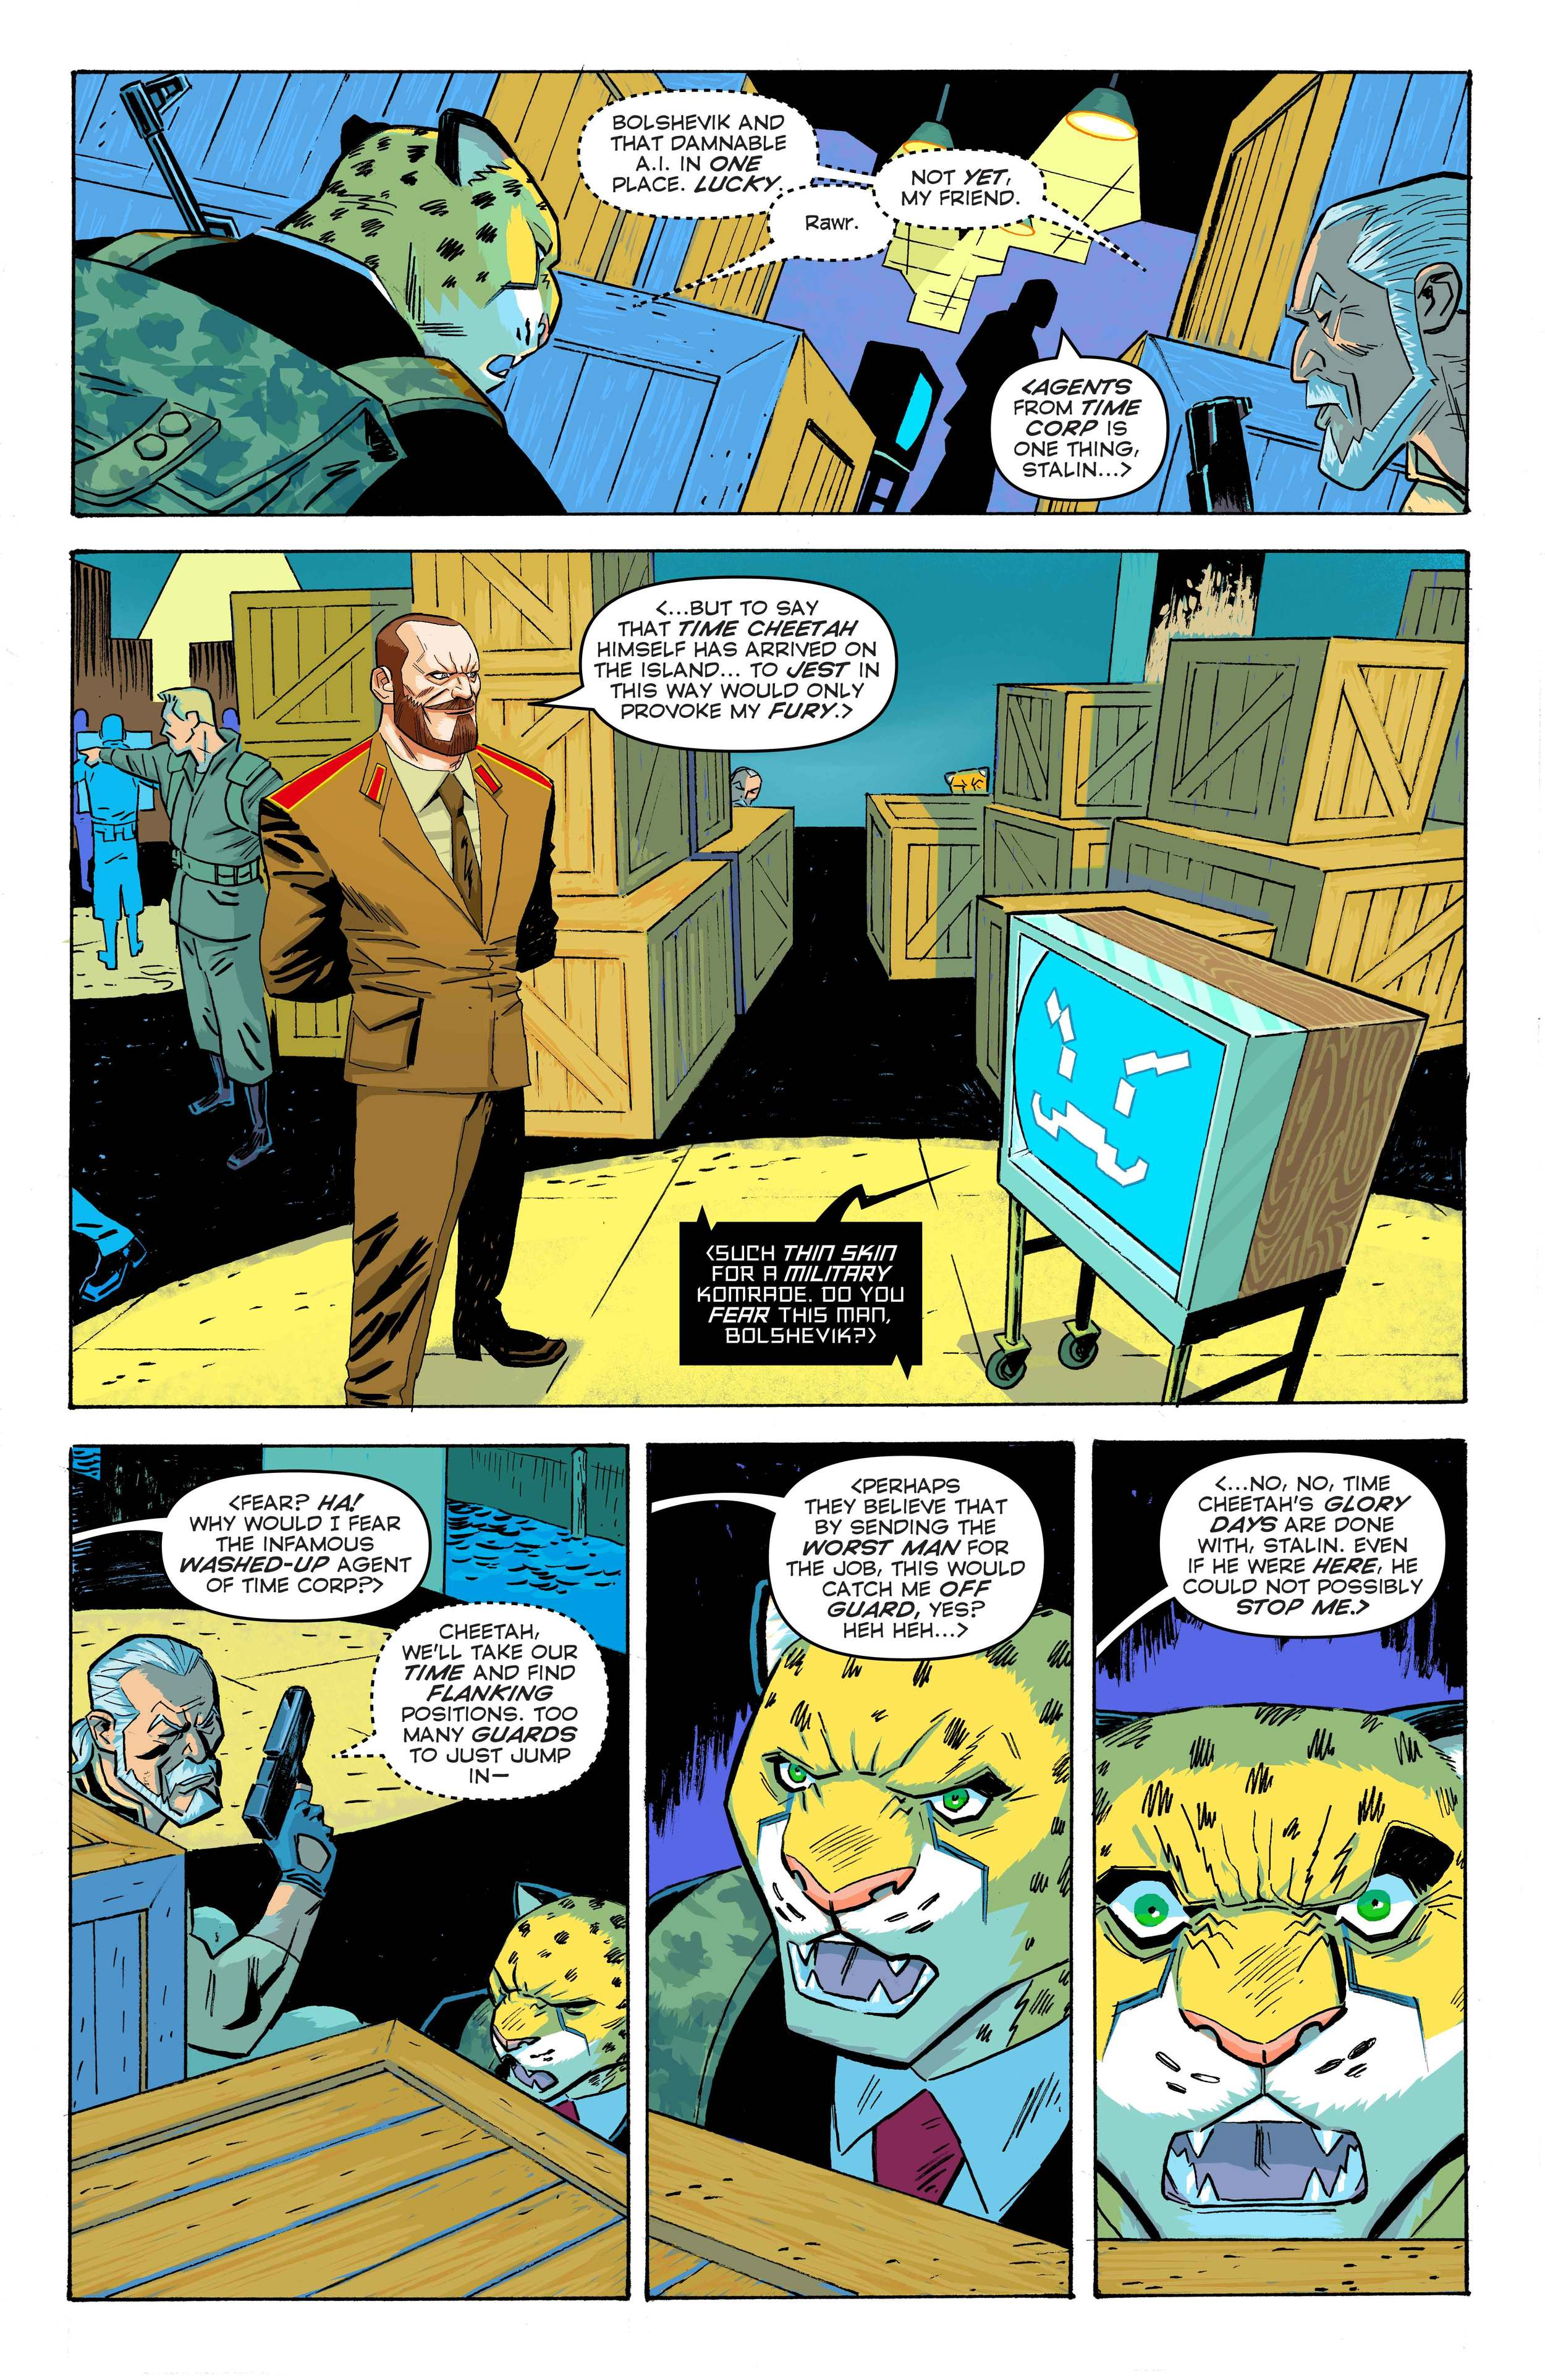 Time Cheetah - The Secret  of Stalin Island Part 1 - Page 25